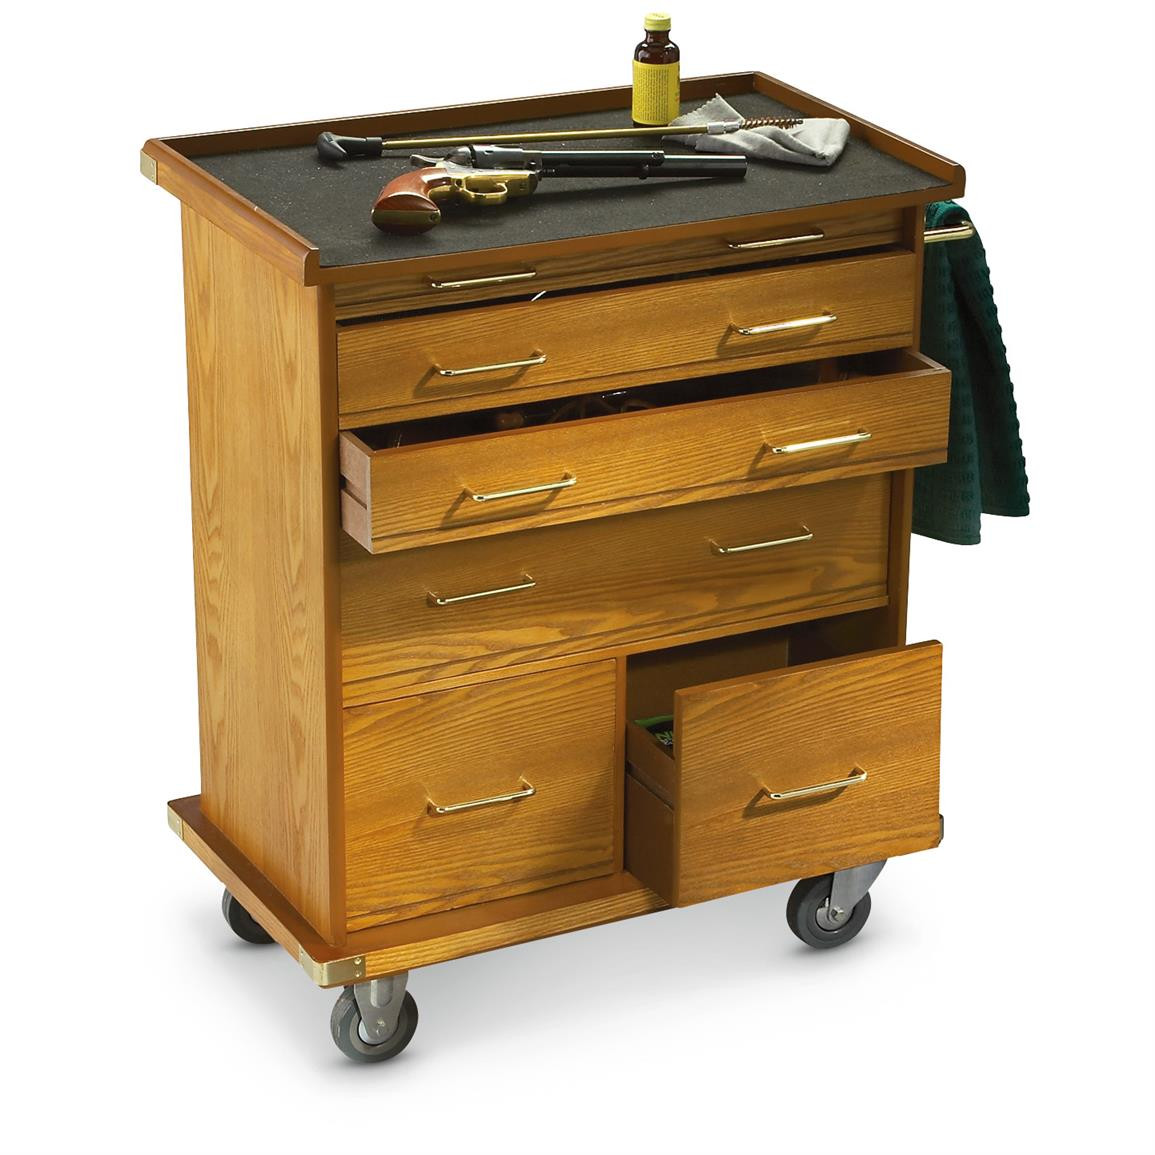 Best ideas about Rolling Storage Cabinet . Save or Pin CASTLECREEK Wood Rolling Storage Cabinet Coins Now.